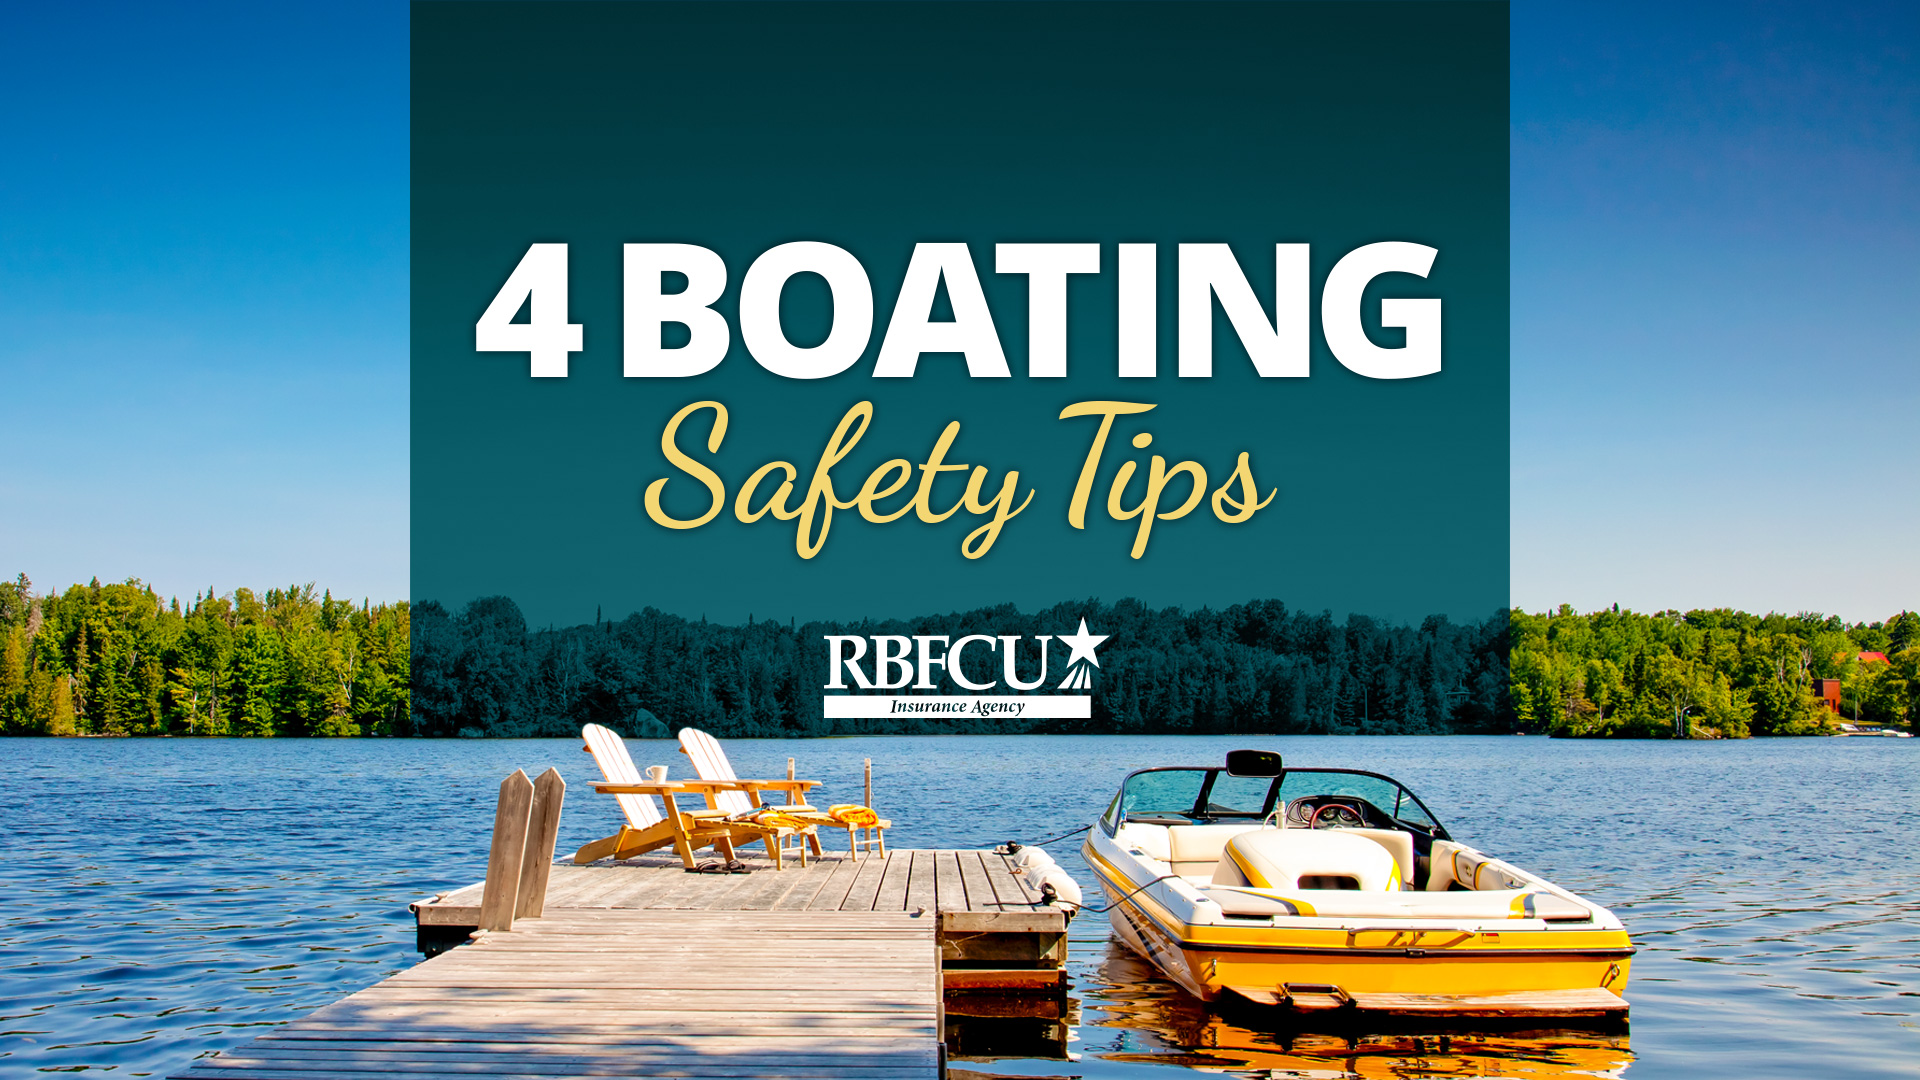 4BoatingSafetyTips